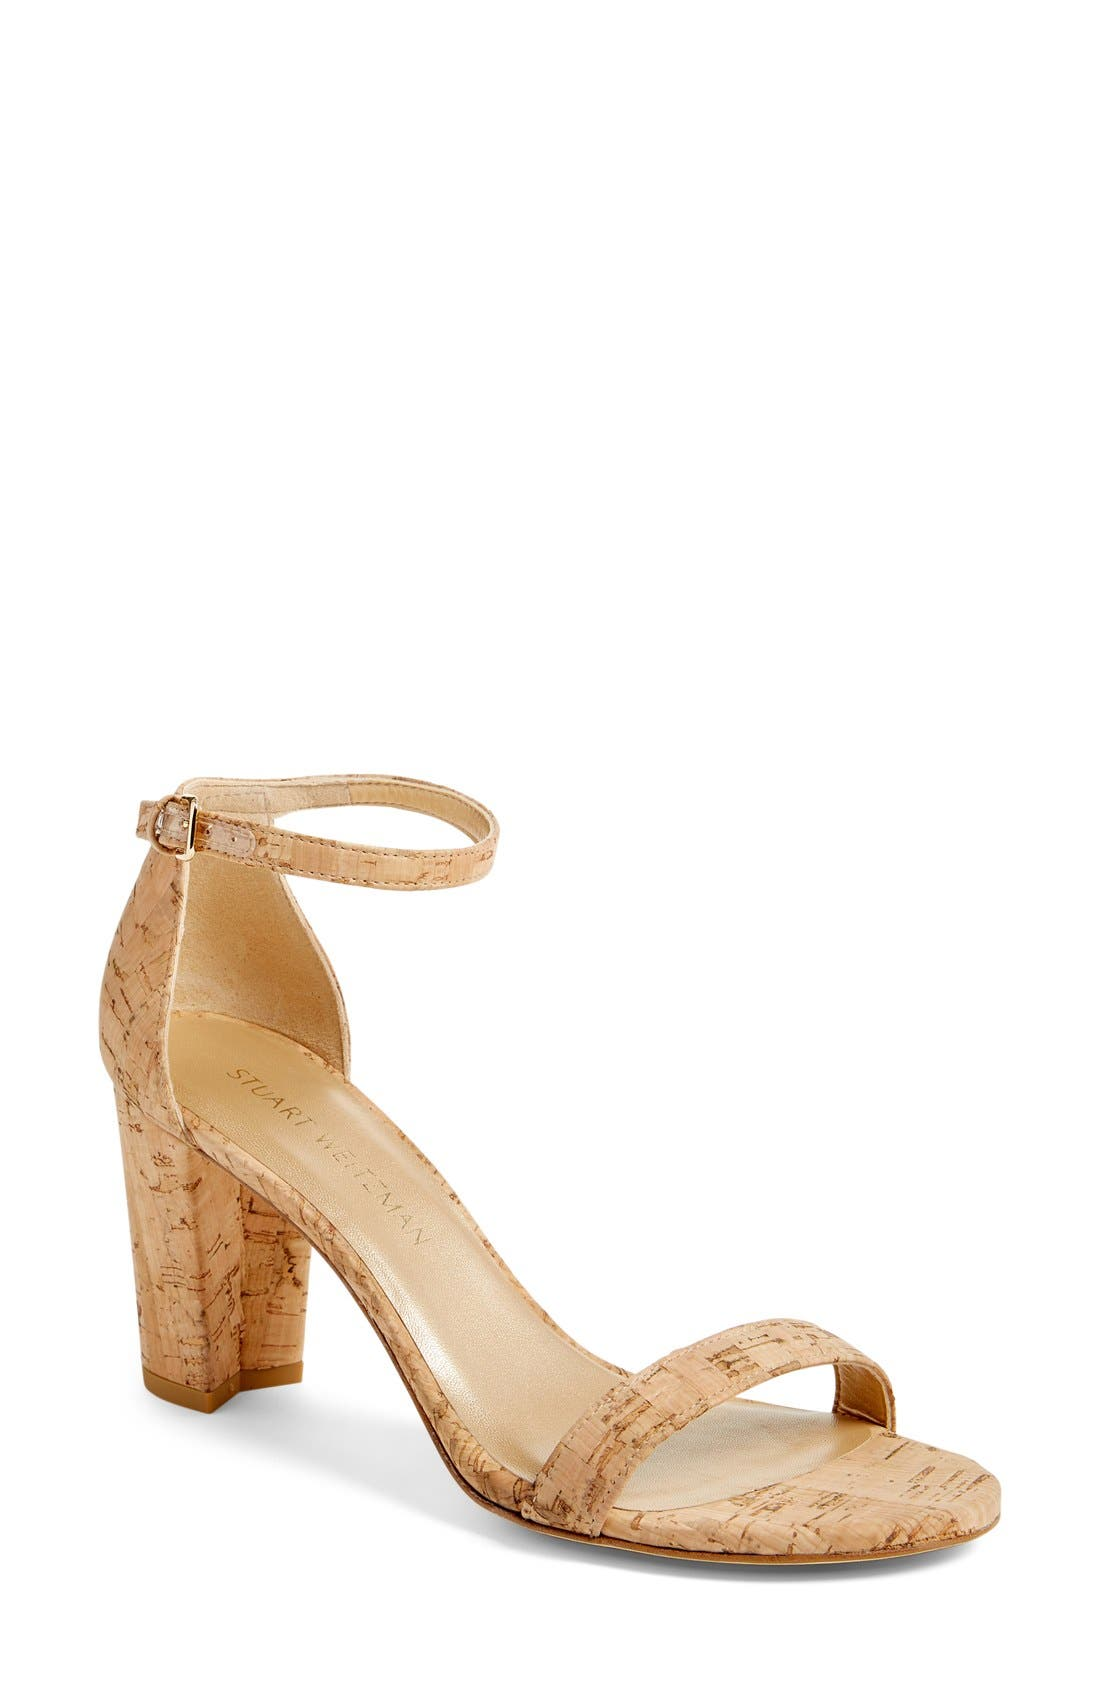 NearlyNude Ankle Strap Sandal,                             Main thumbnail 22, color,